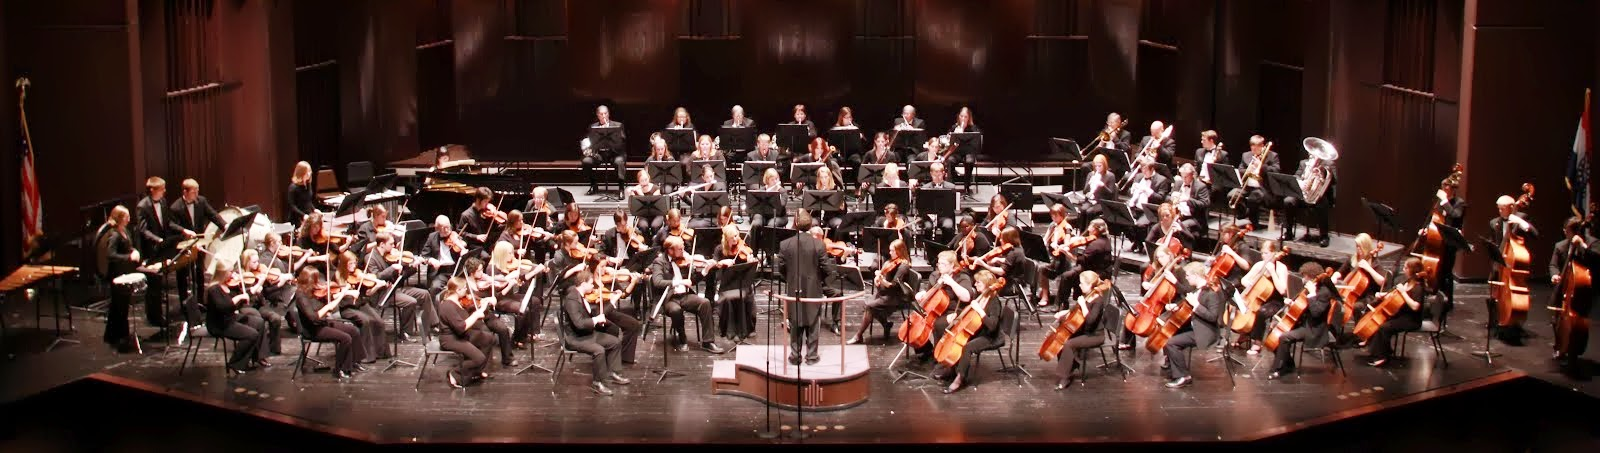 Springfield-Drury Civic Orchestra